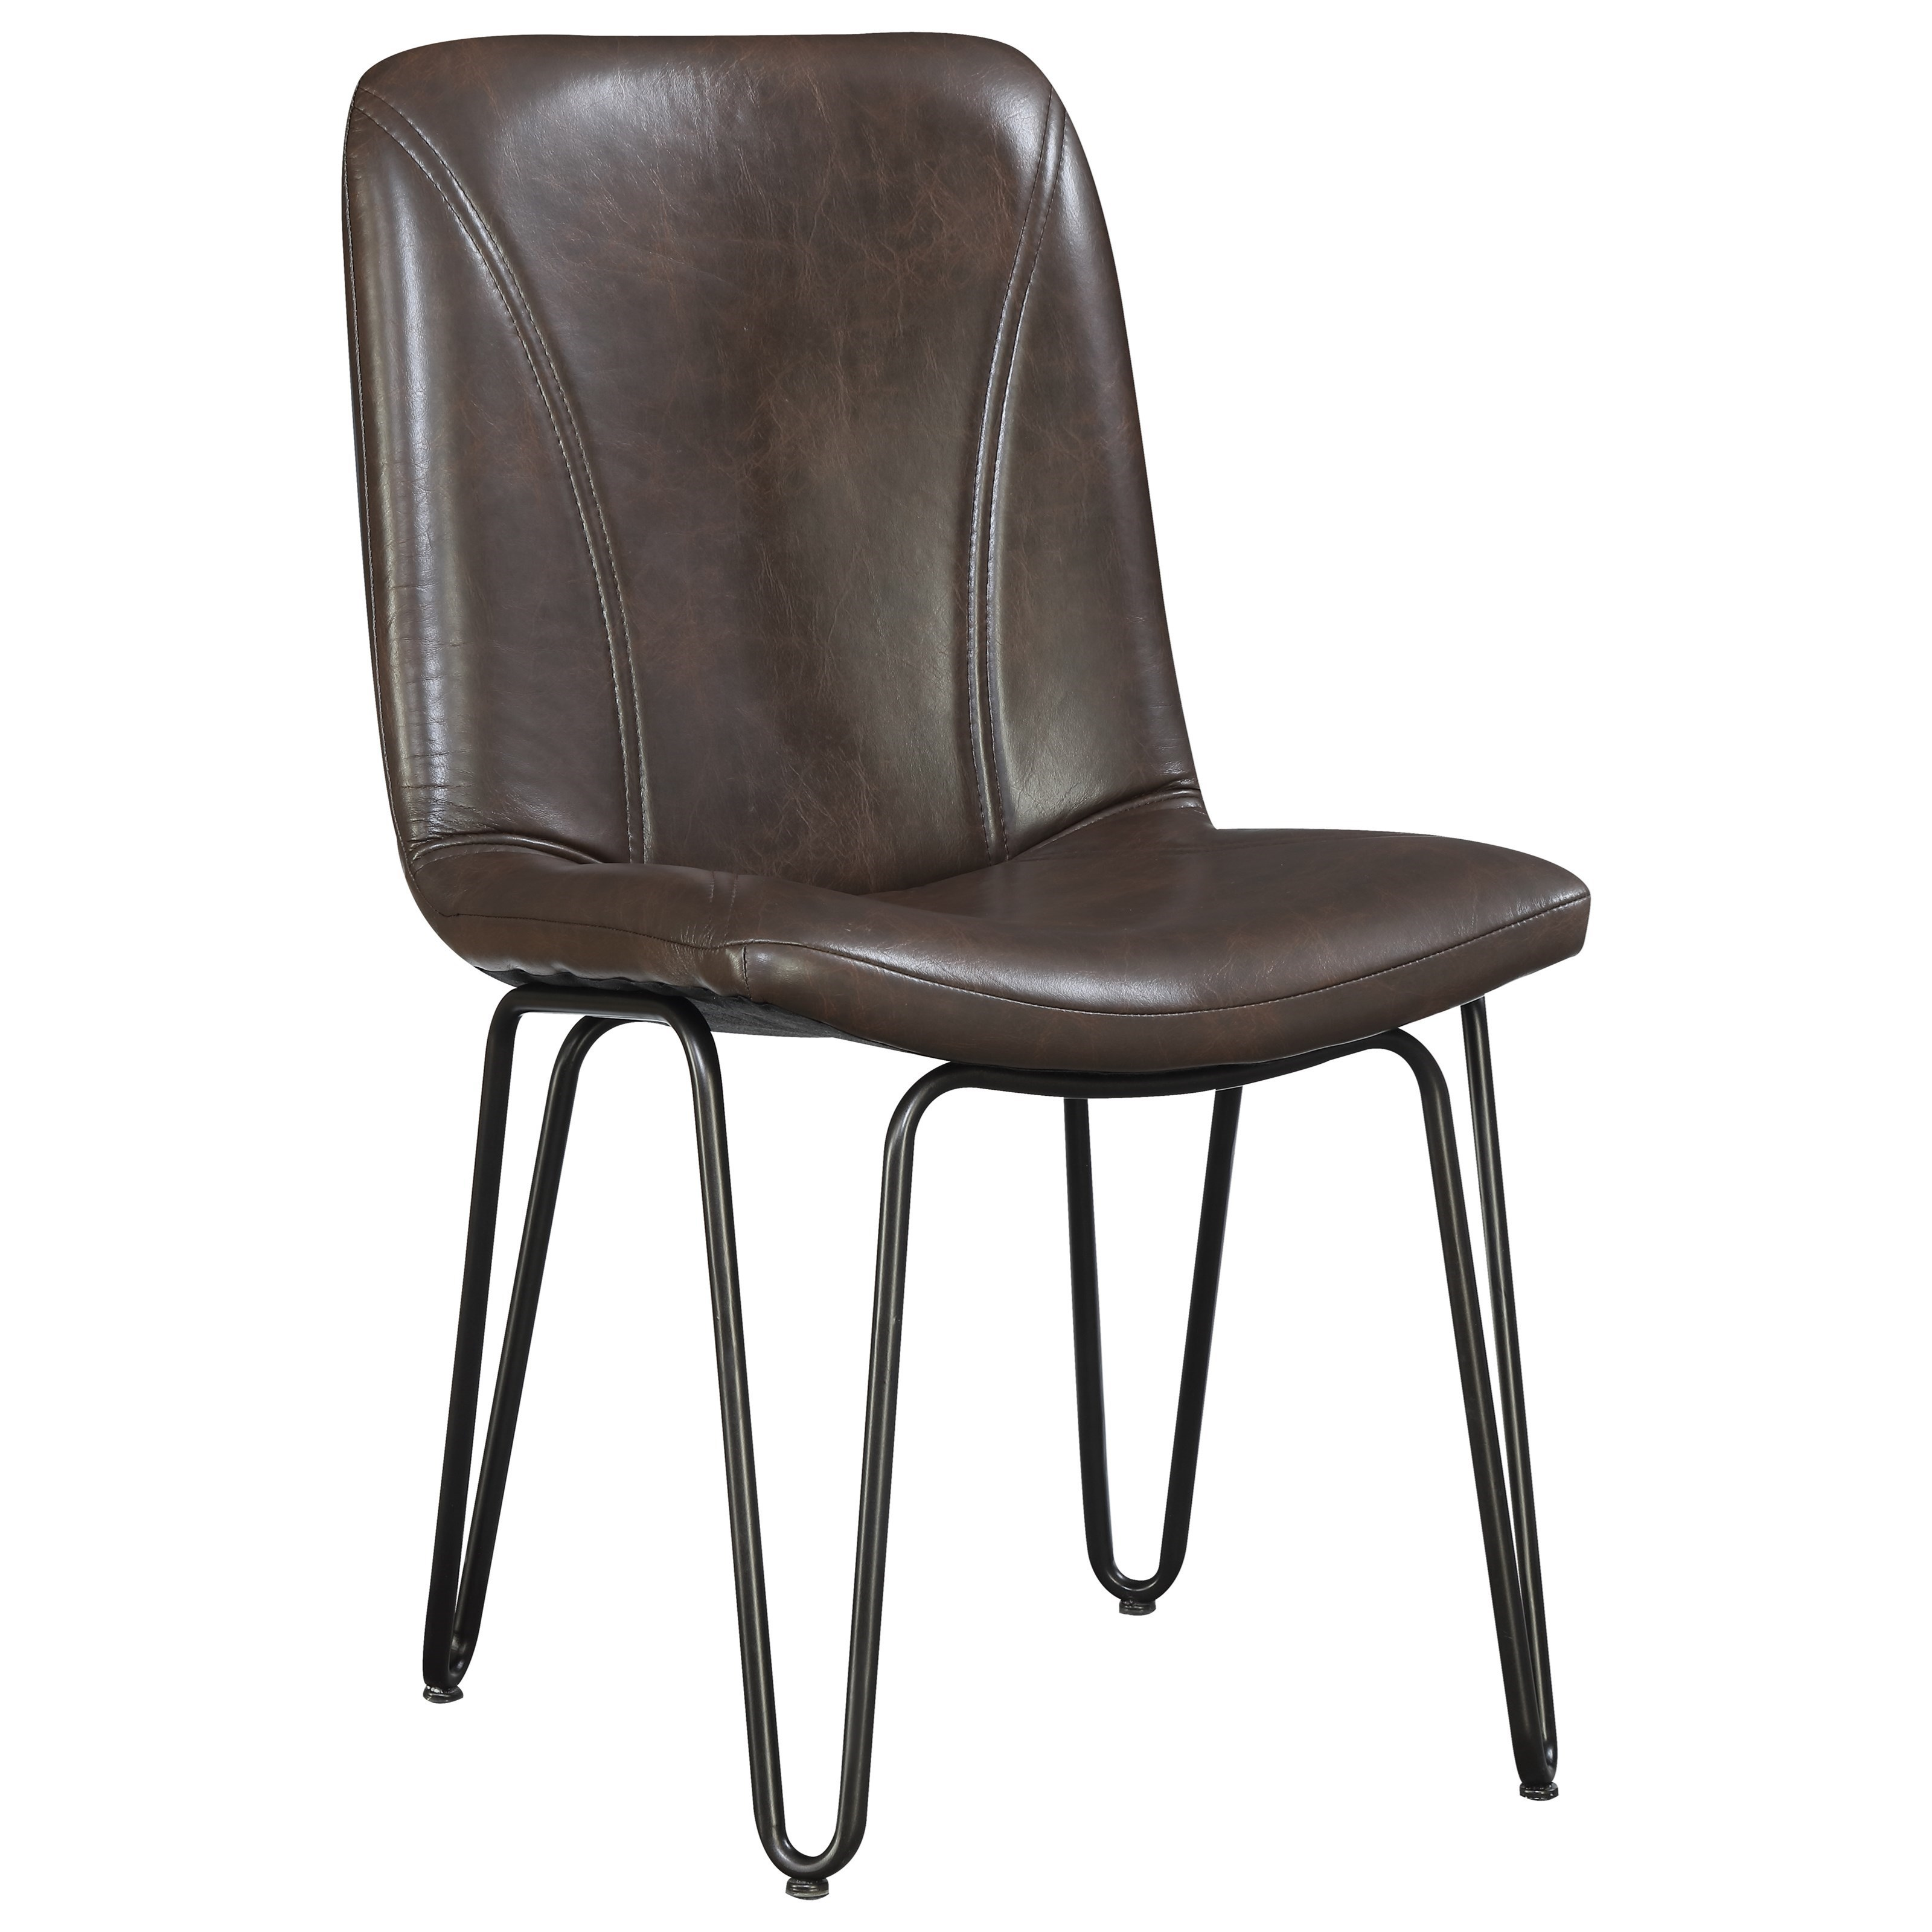 Hairpin Leg Chair Coaster Chambler 130084 Dining Chair With Leatherette Seat